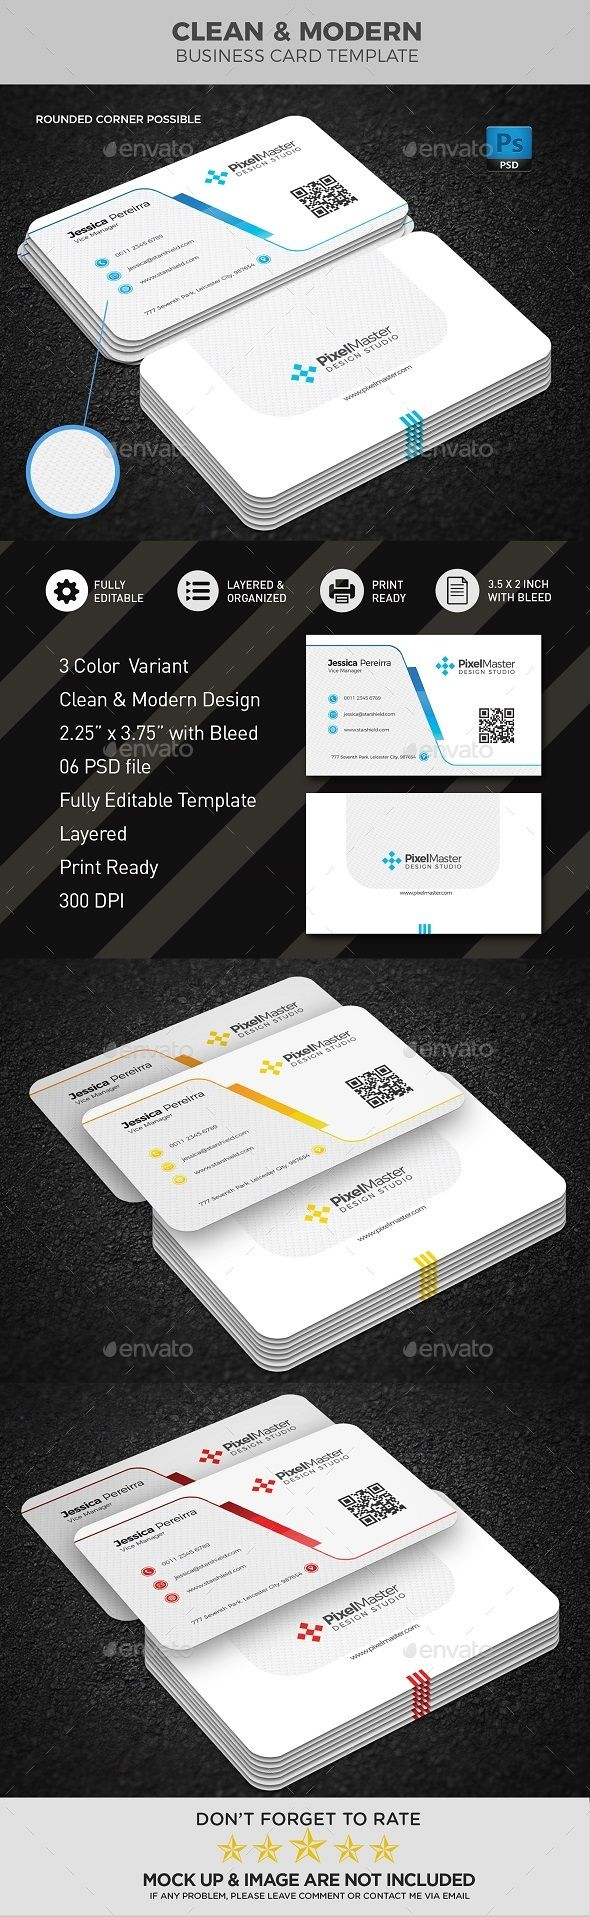 Business Card Template #new #proposal  • Download here → https://graphicriver.net/item/business-card-template/20621427?ref=pxcr